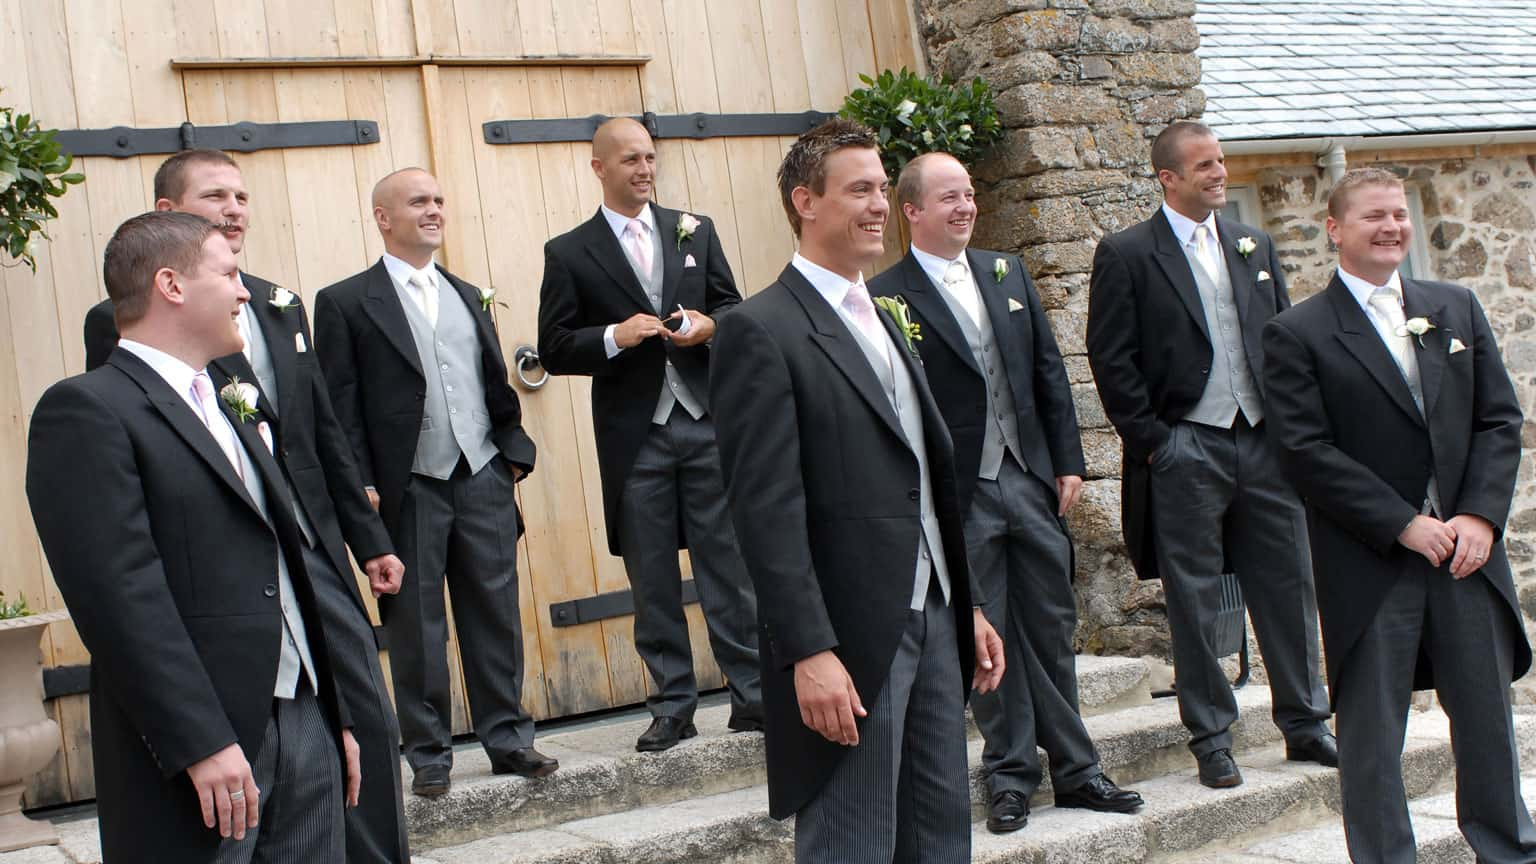 The great Barn Devon, Wedding Venue Devon, Civil Ceremonies